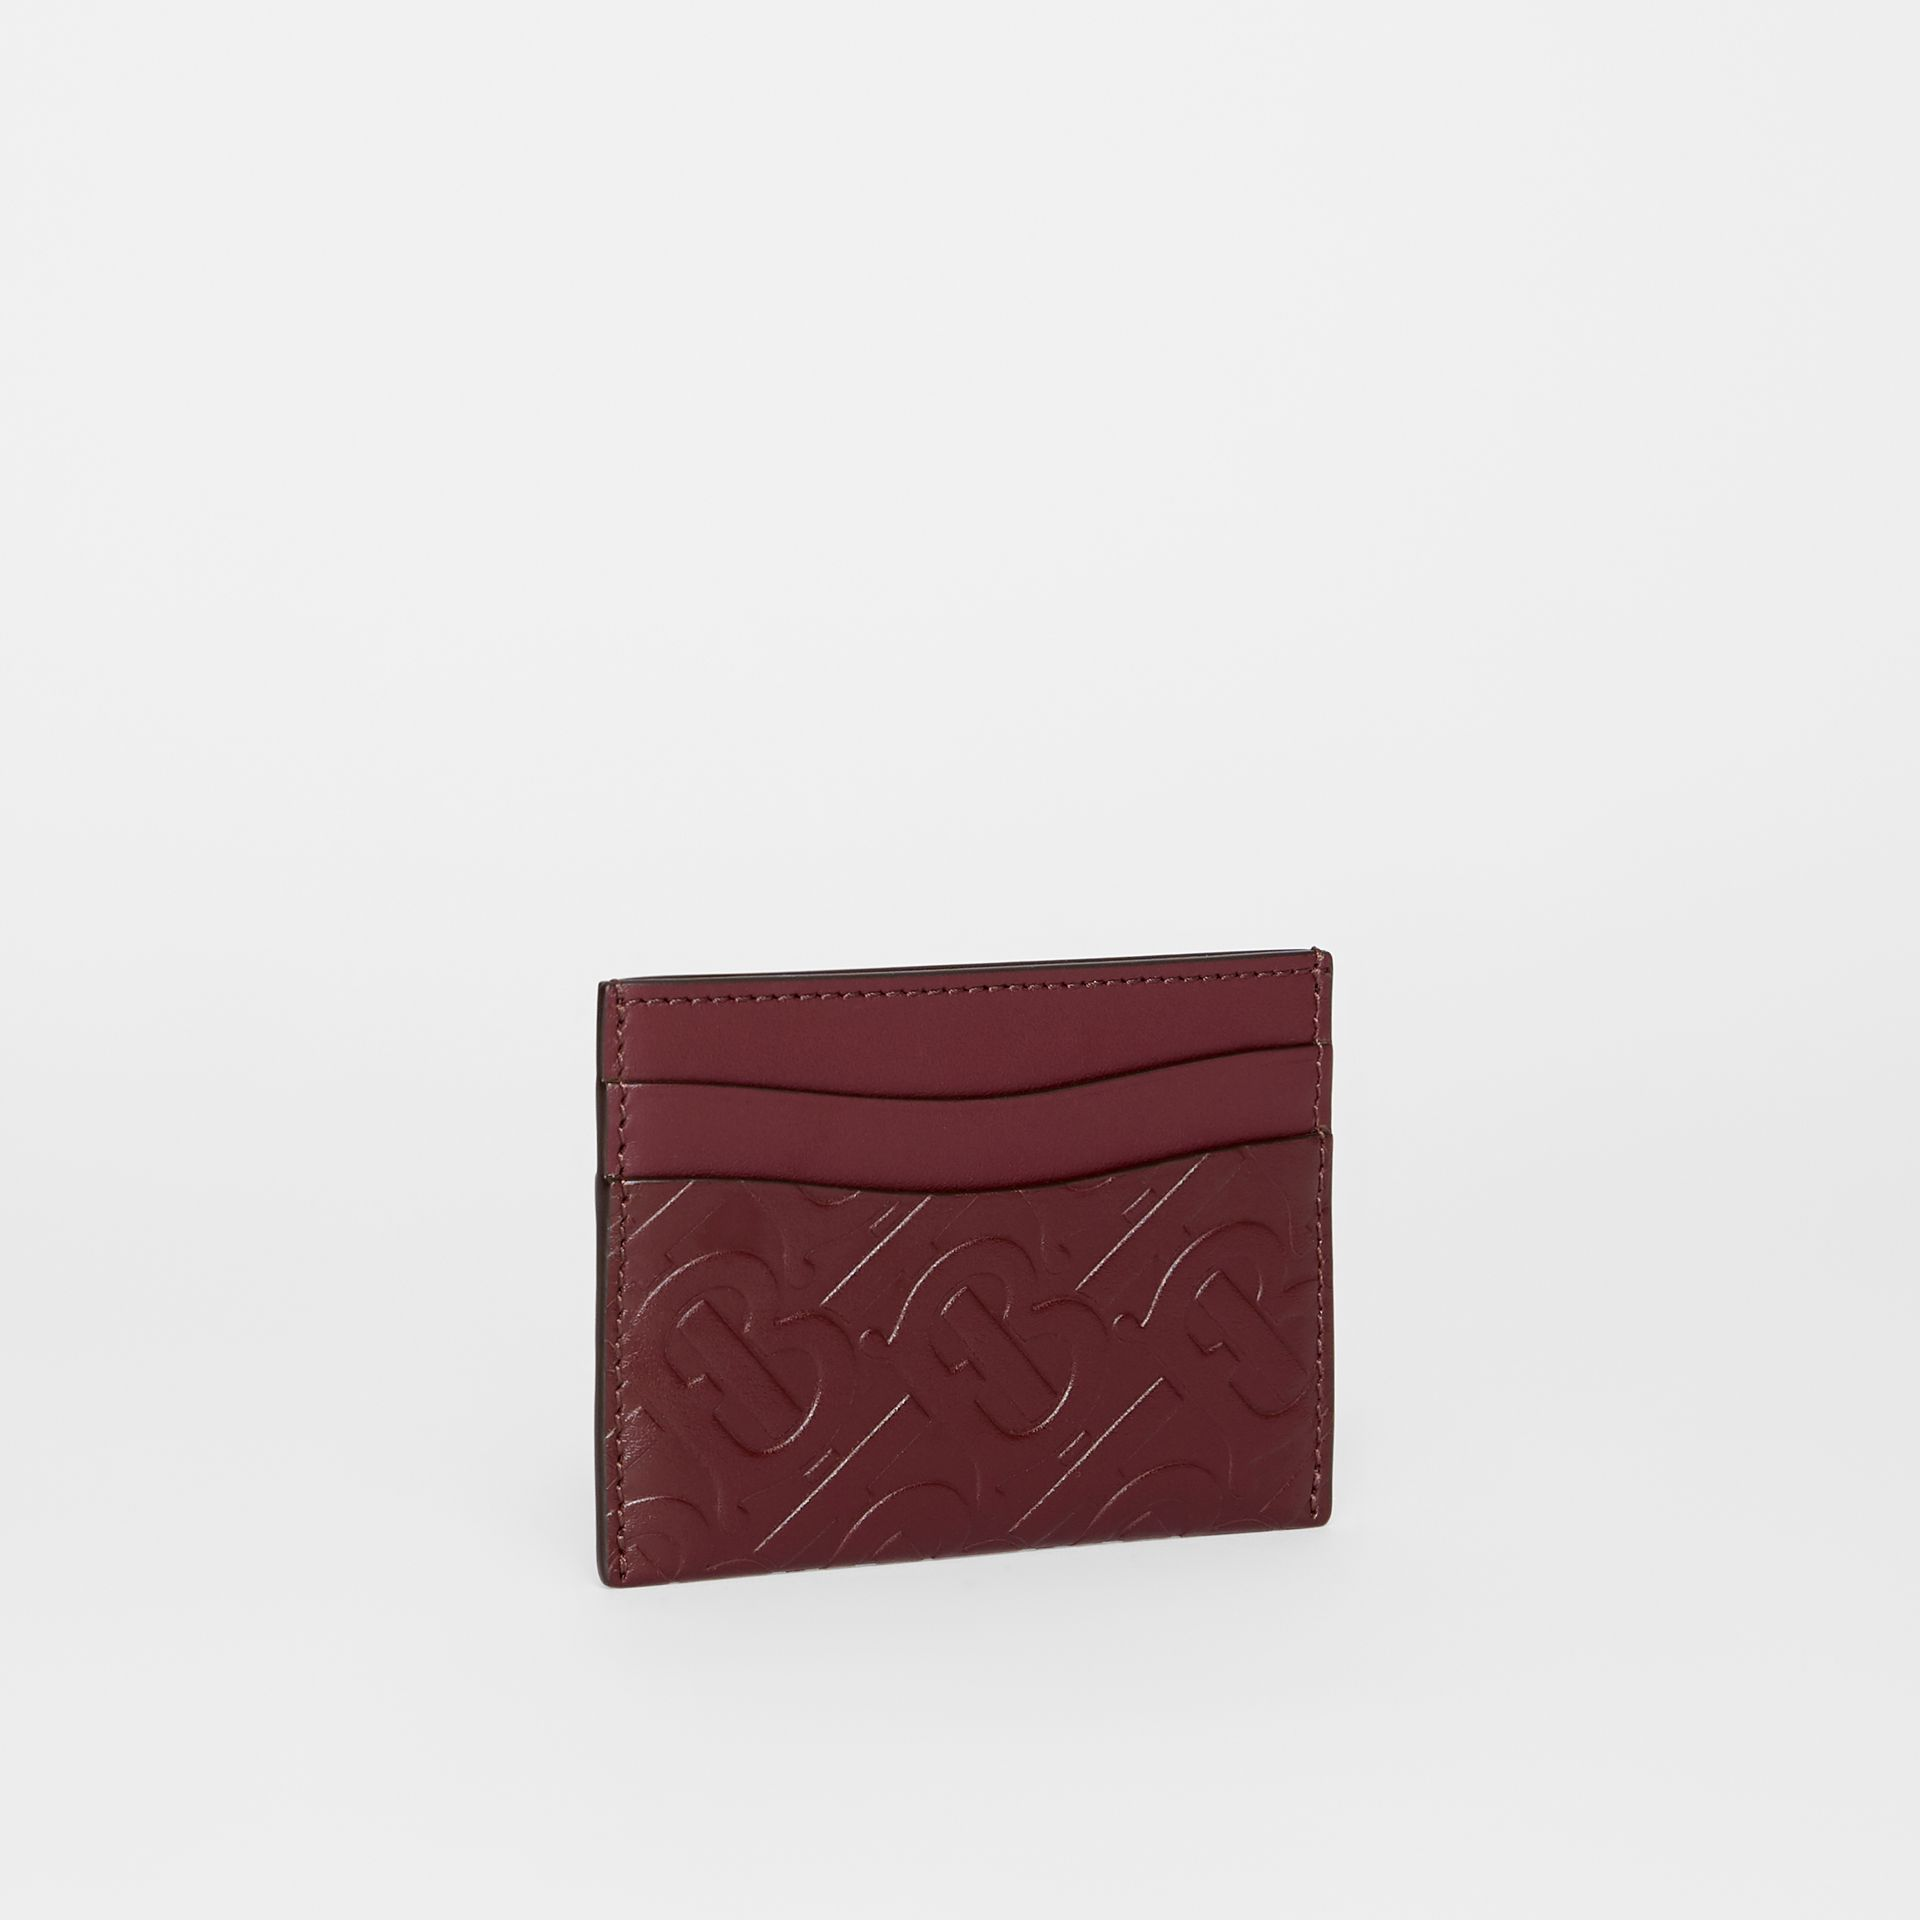 Porte-cartes en cuir Monogram (Oxblood) - Femme | Burberry Canada - photo de la galerie 3